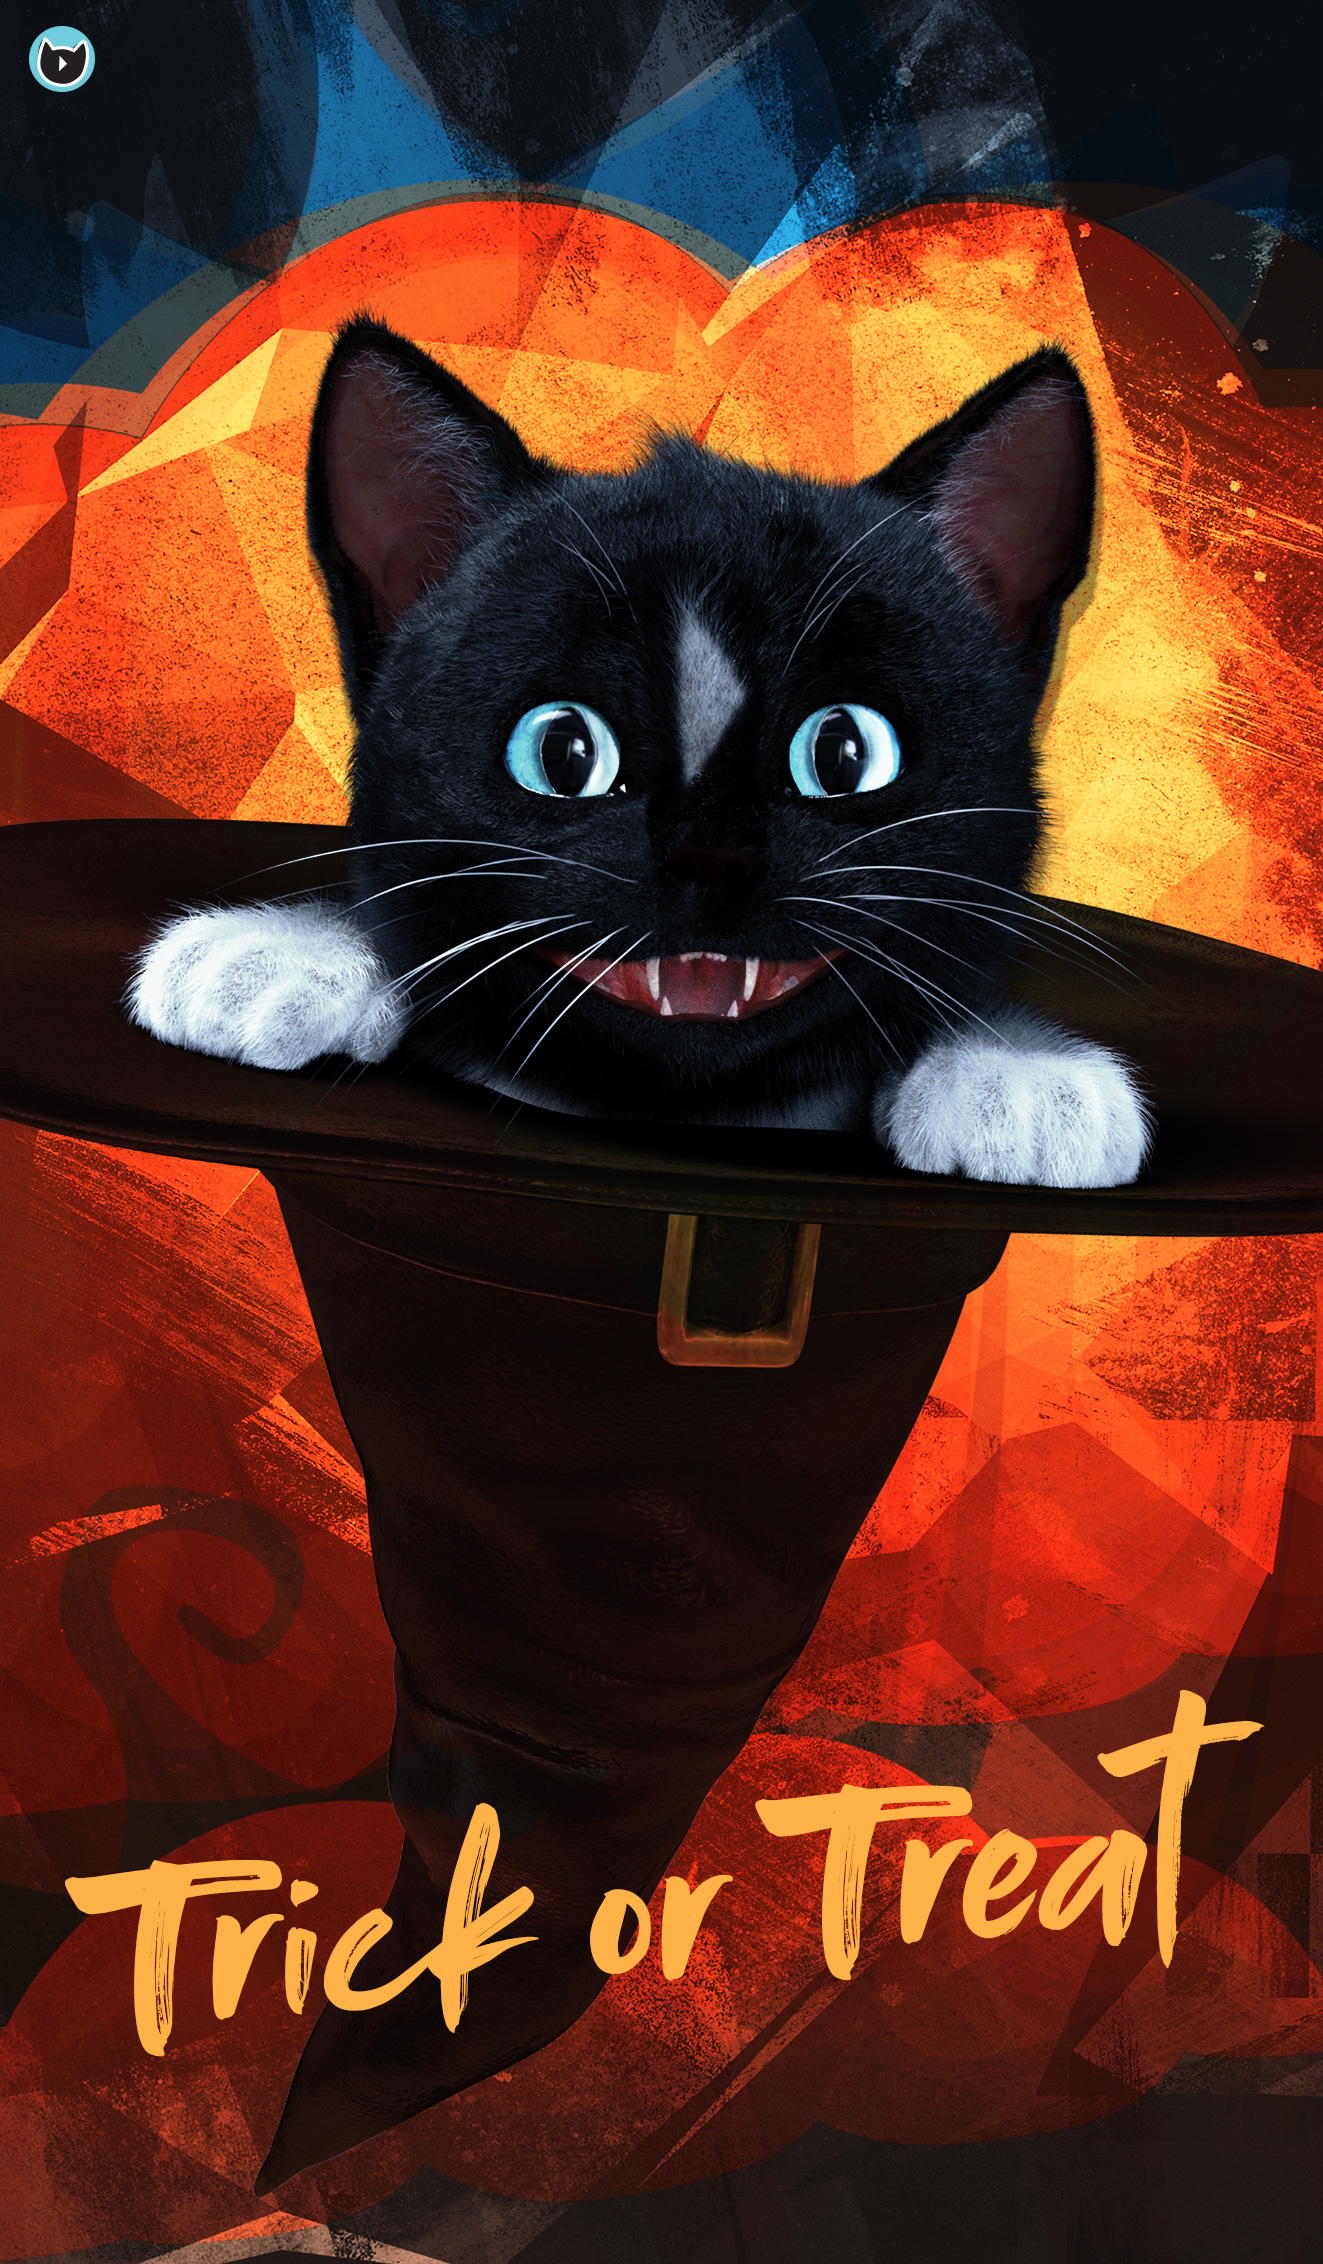 Cat in the hat - black cat Felini in witches hat trick and treating. Happy Halloween!